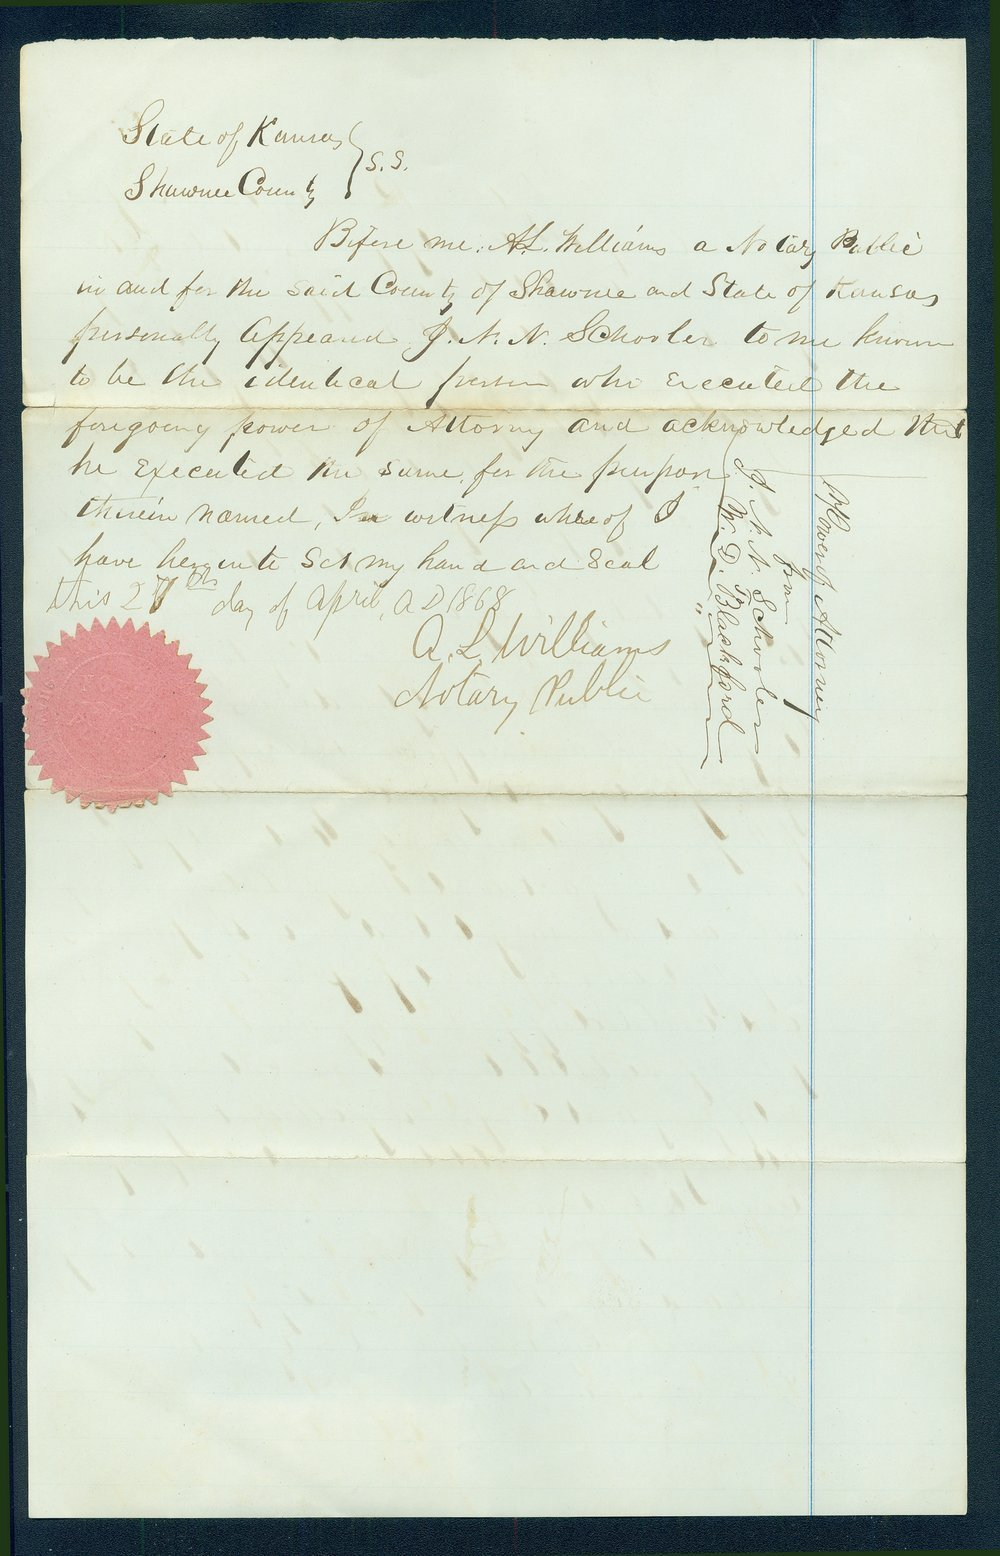 Letter by J.N.N. Schooler declaring William D. Blackford his attorney - 2